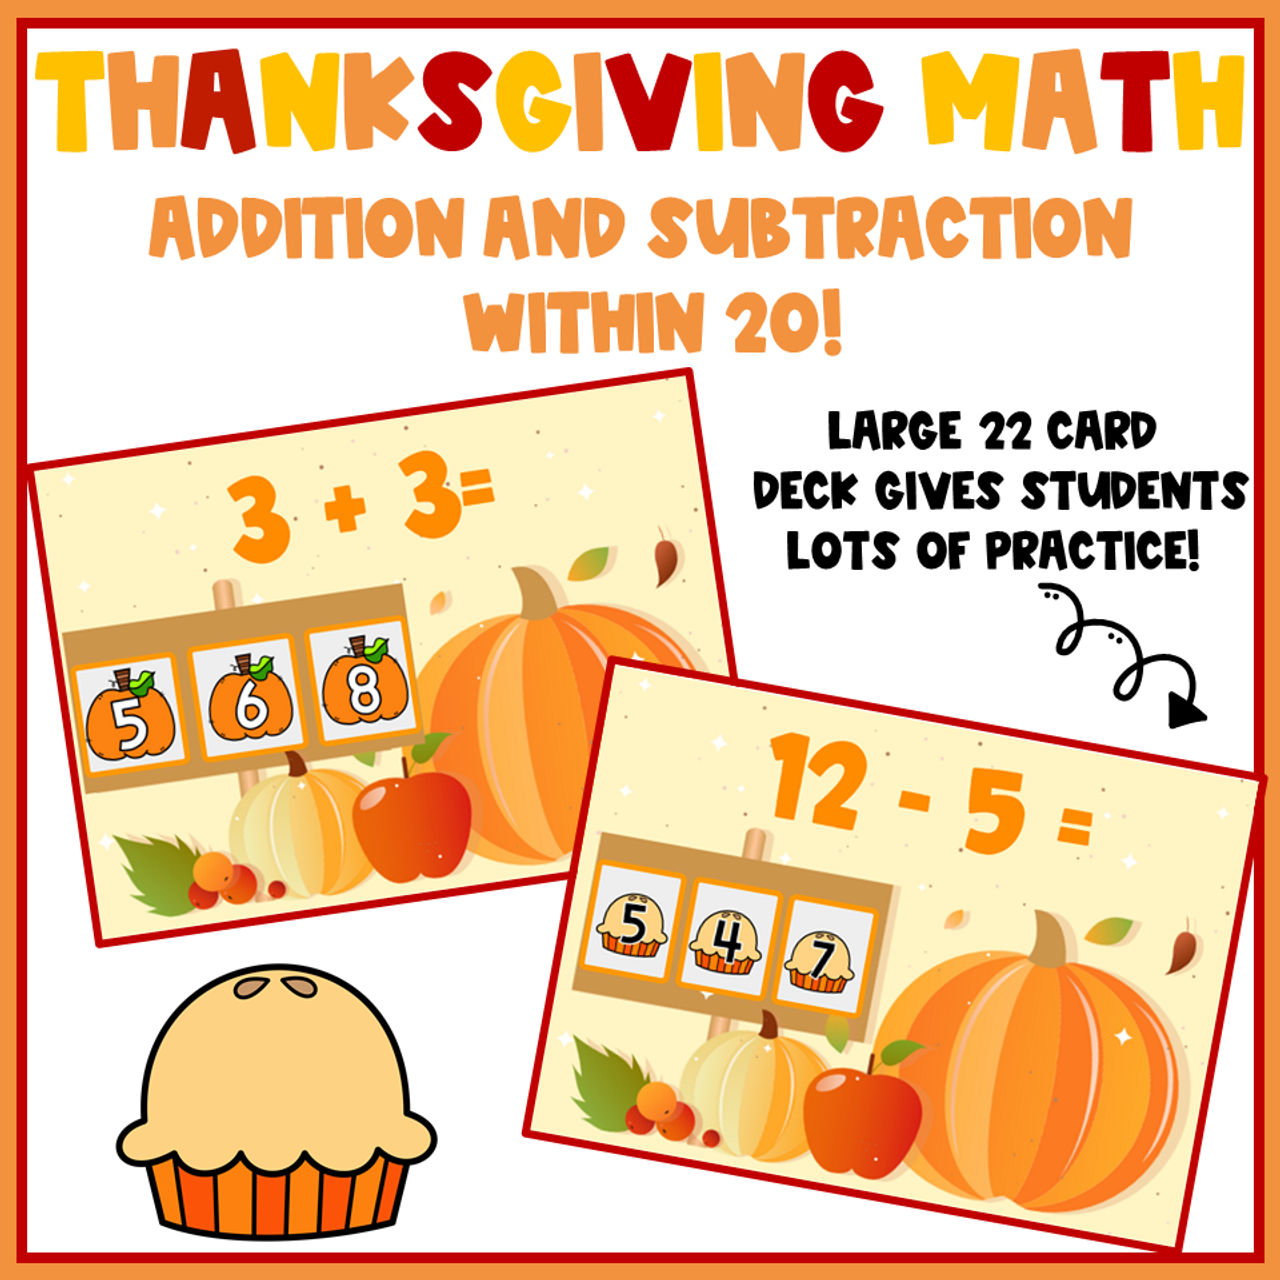 Thanksgiving Math Addition and Subtraction Within 20